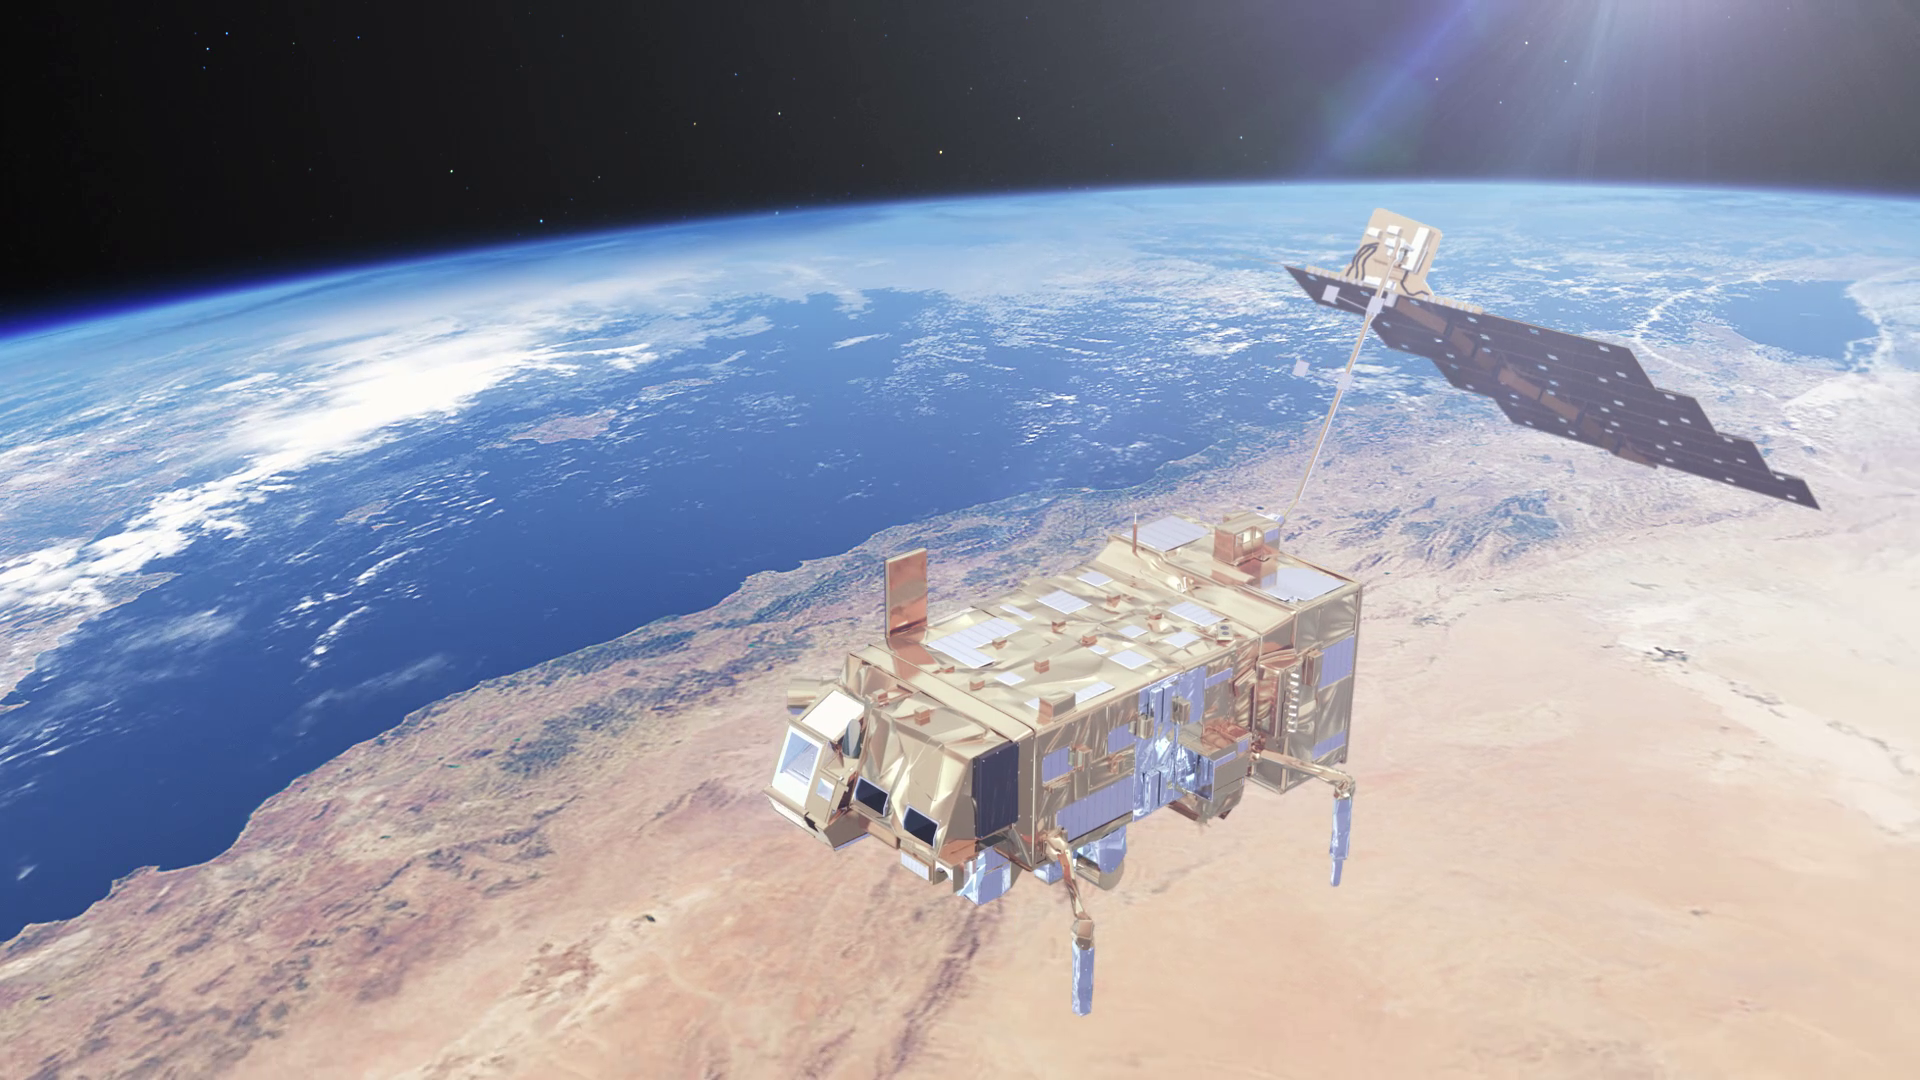 MetOp for weather forecasting